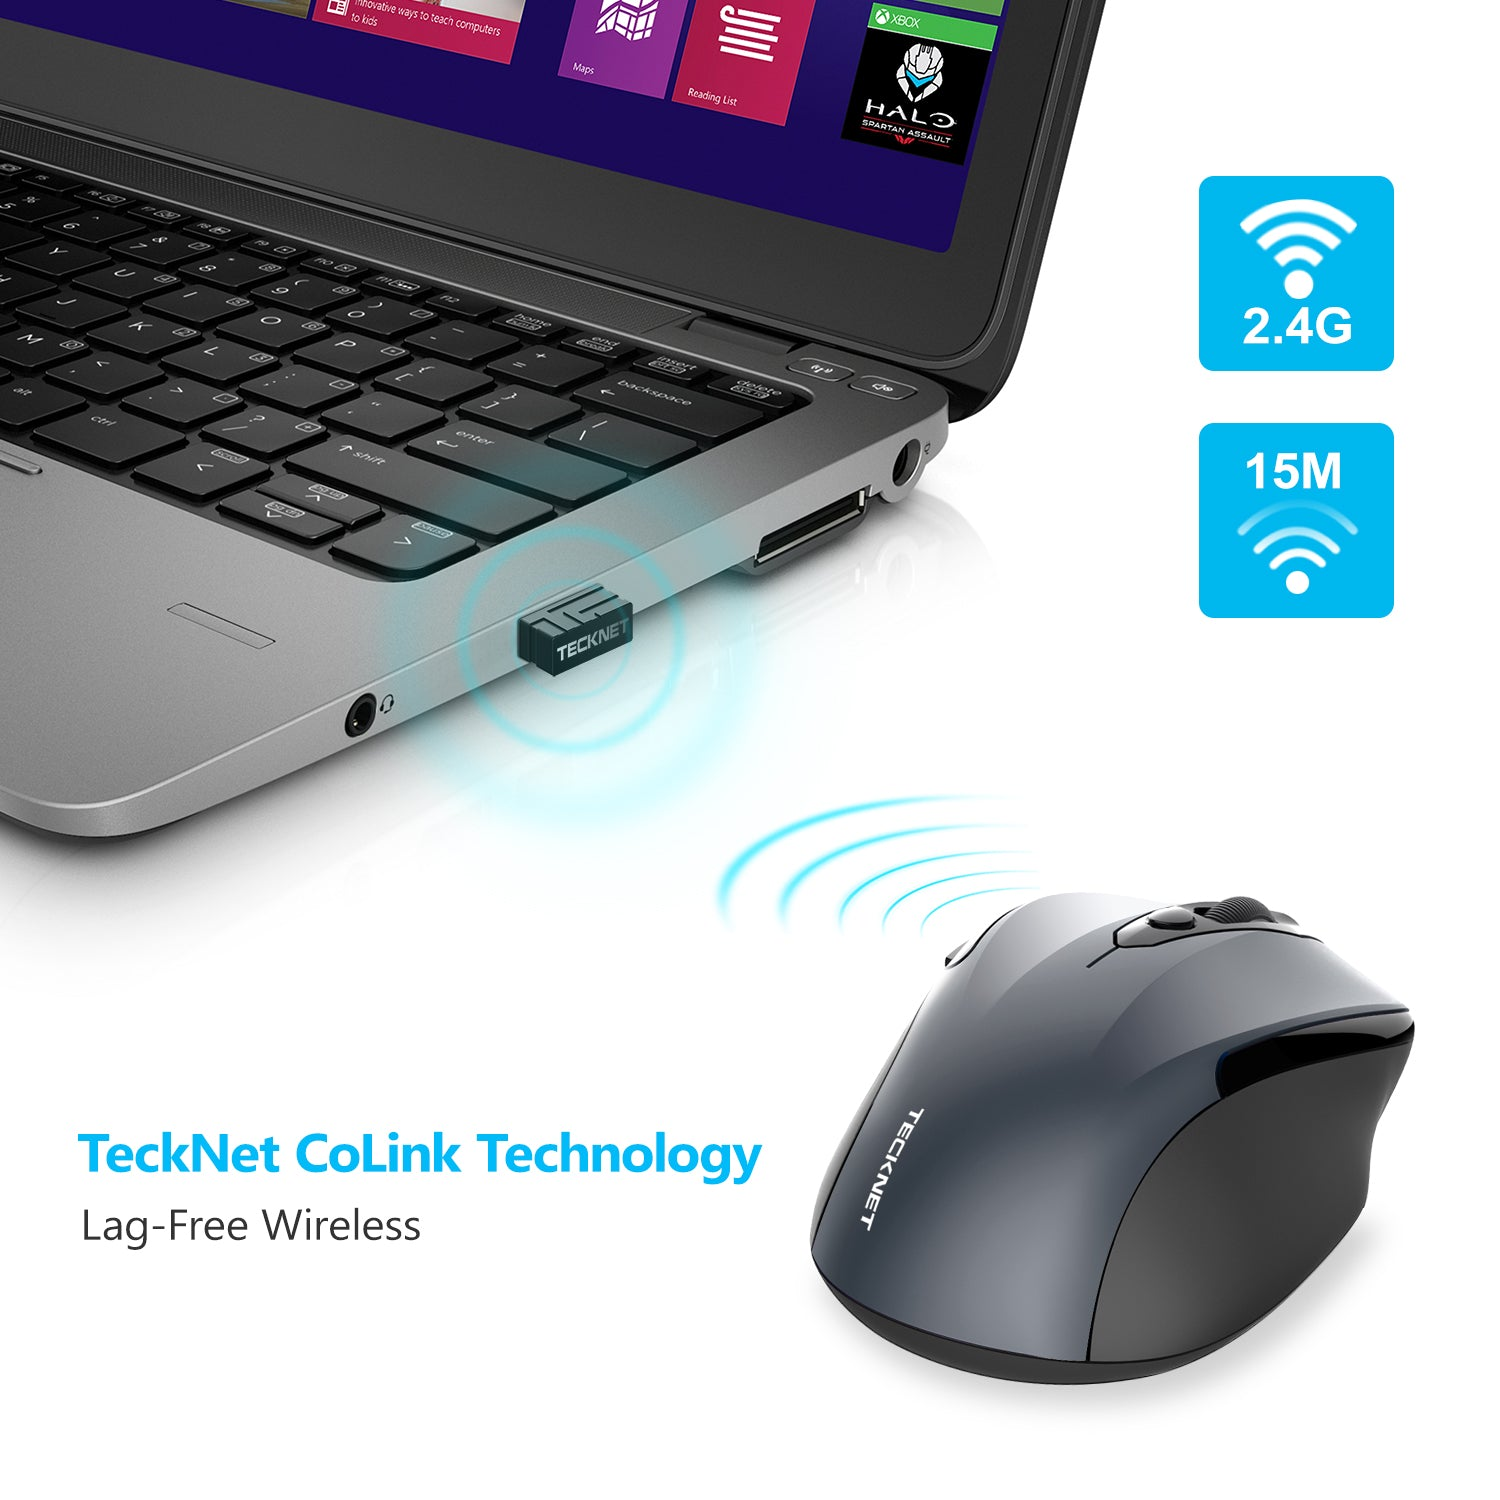 TECKNET Pro 2.4G 2600 DPI Wireless Mouse for Office Cordless Mice